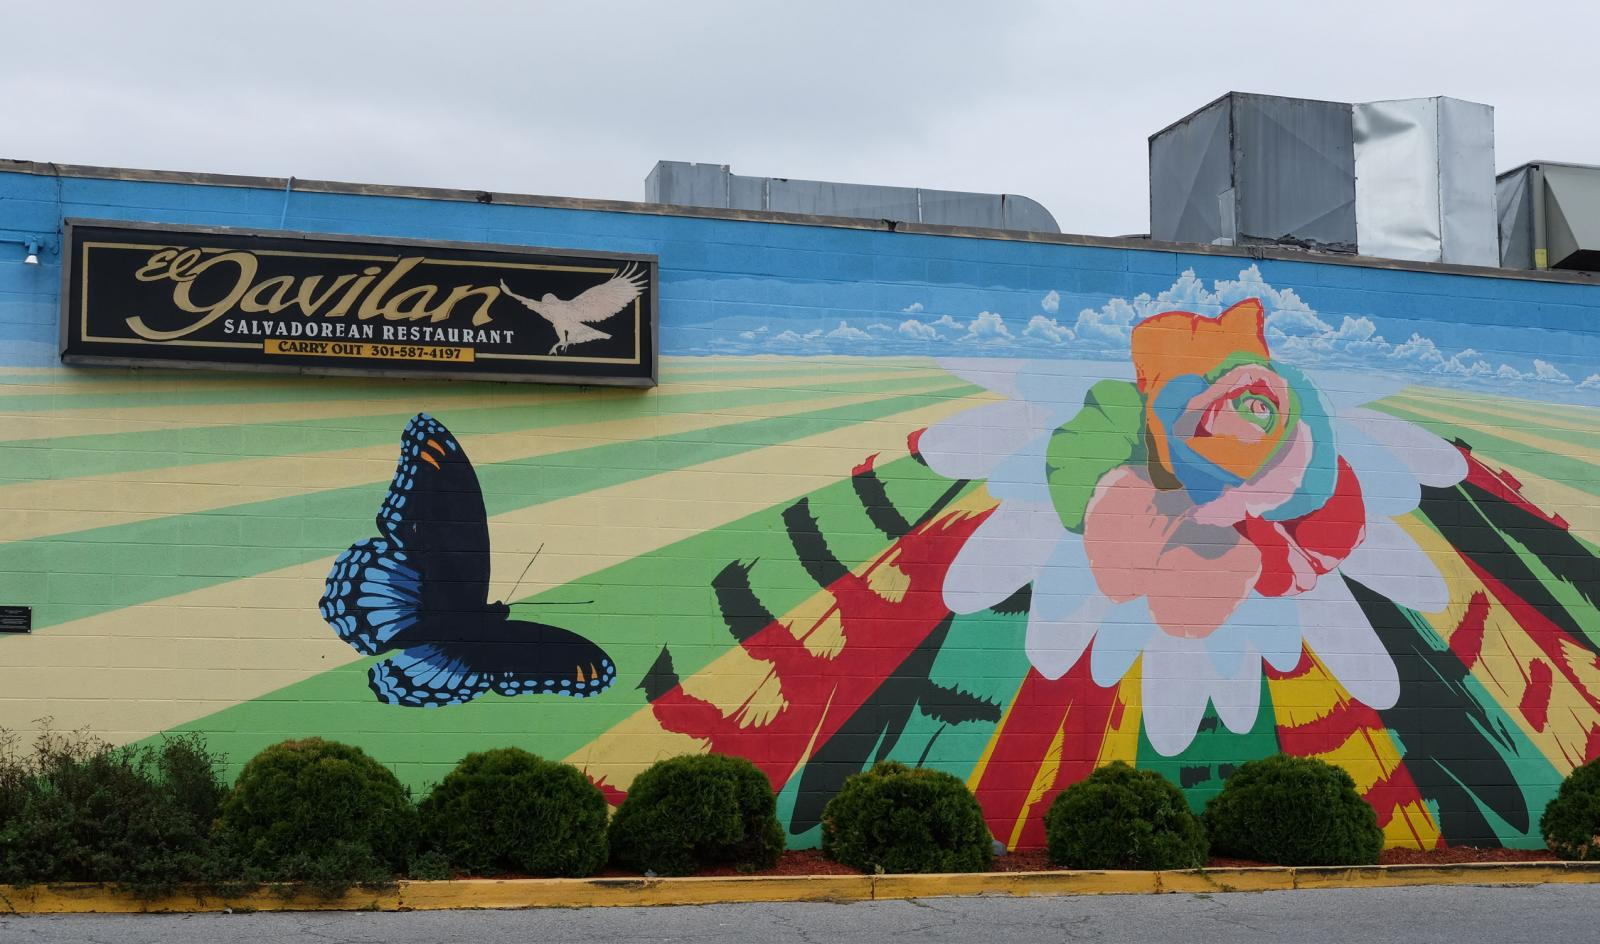 Flower and butterfly wall painting on the side of a building. Credit: A Long Life for Long Branch